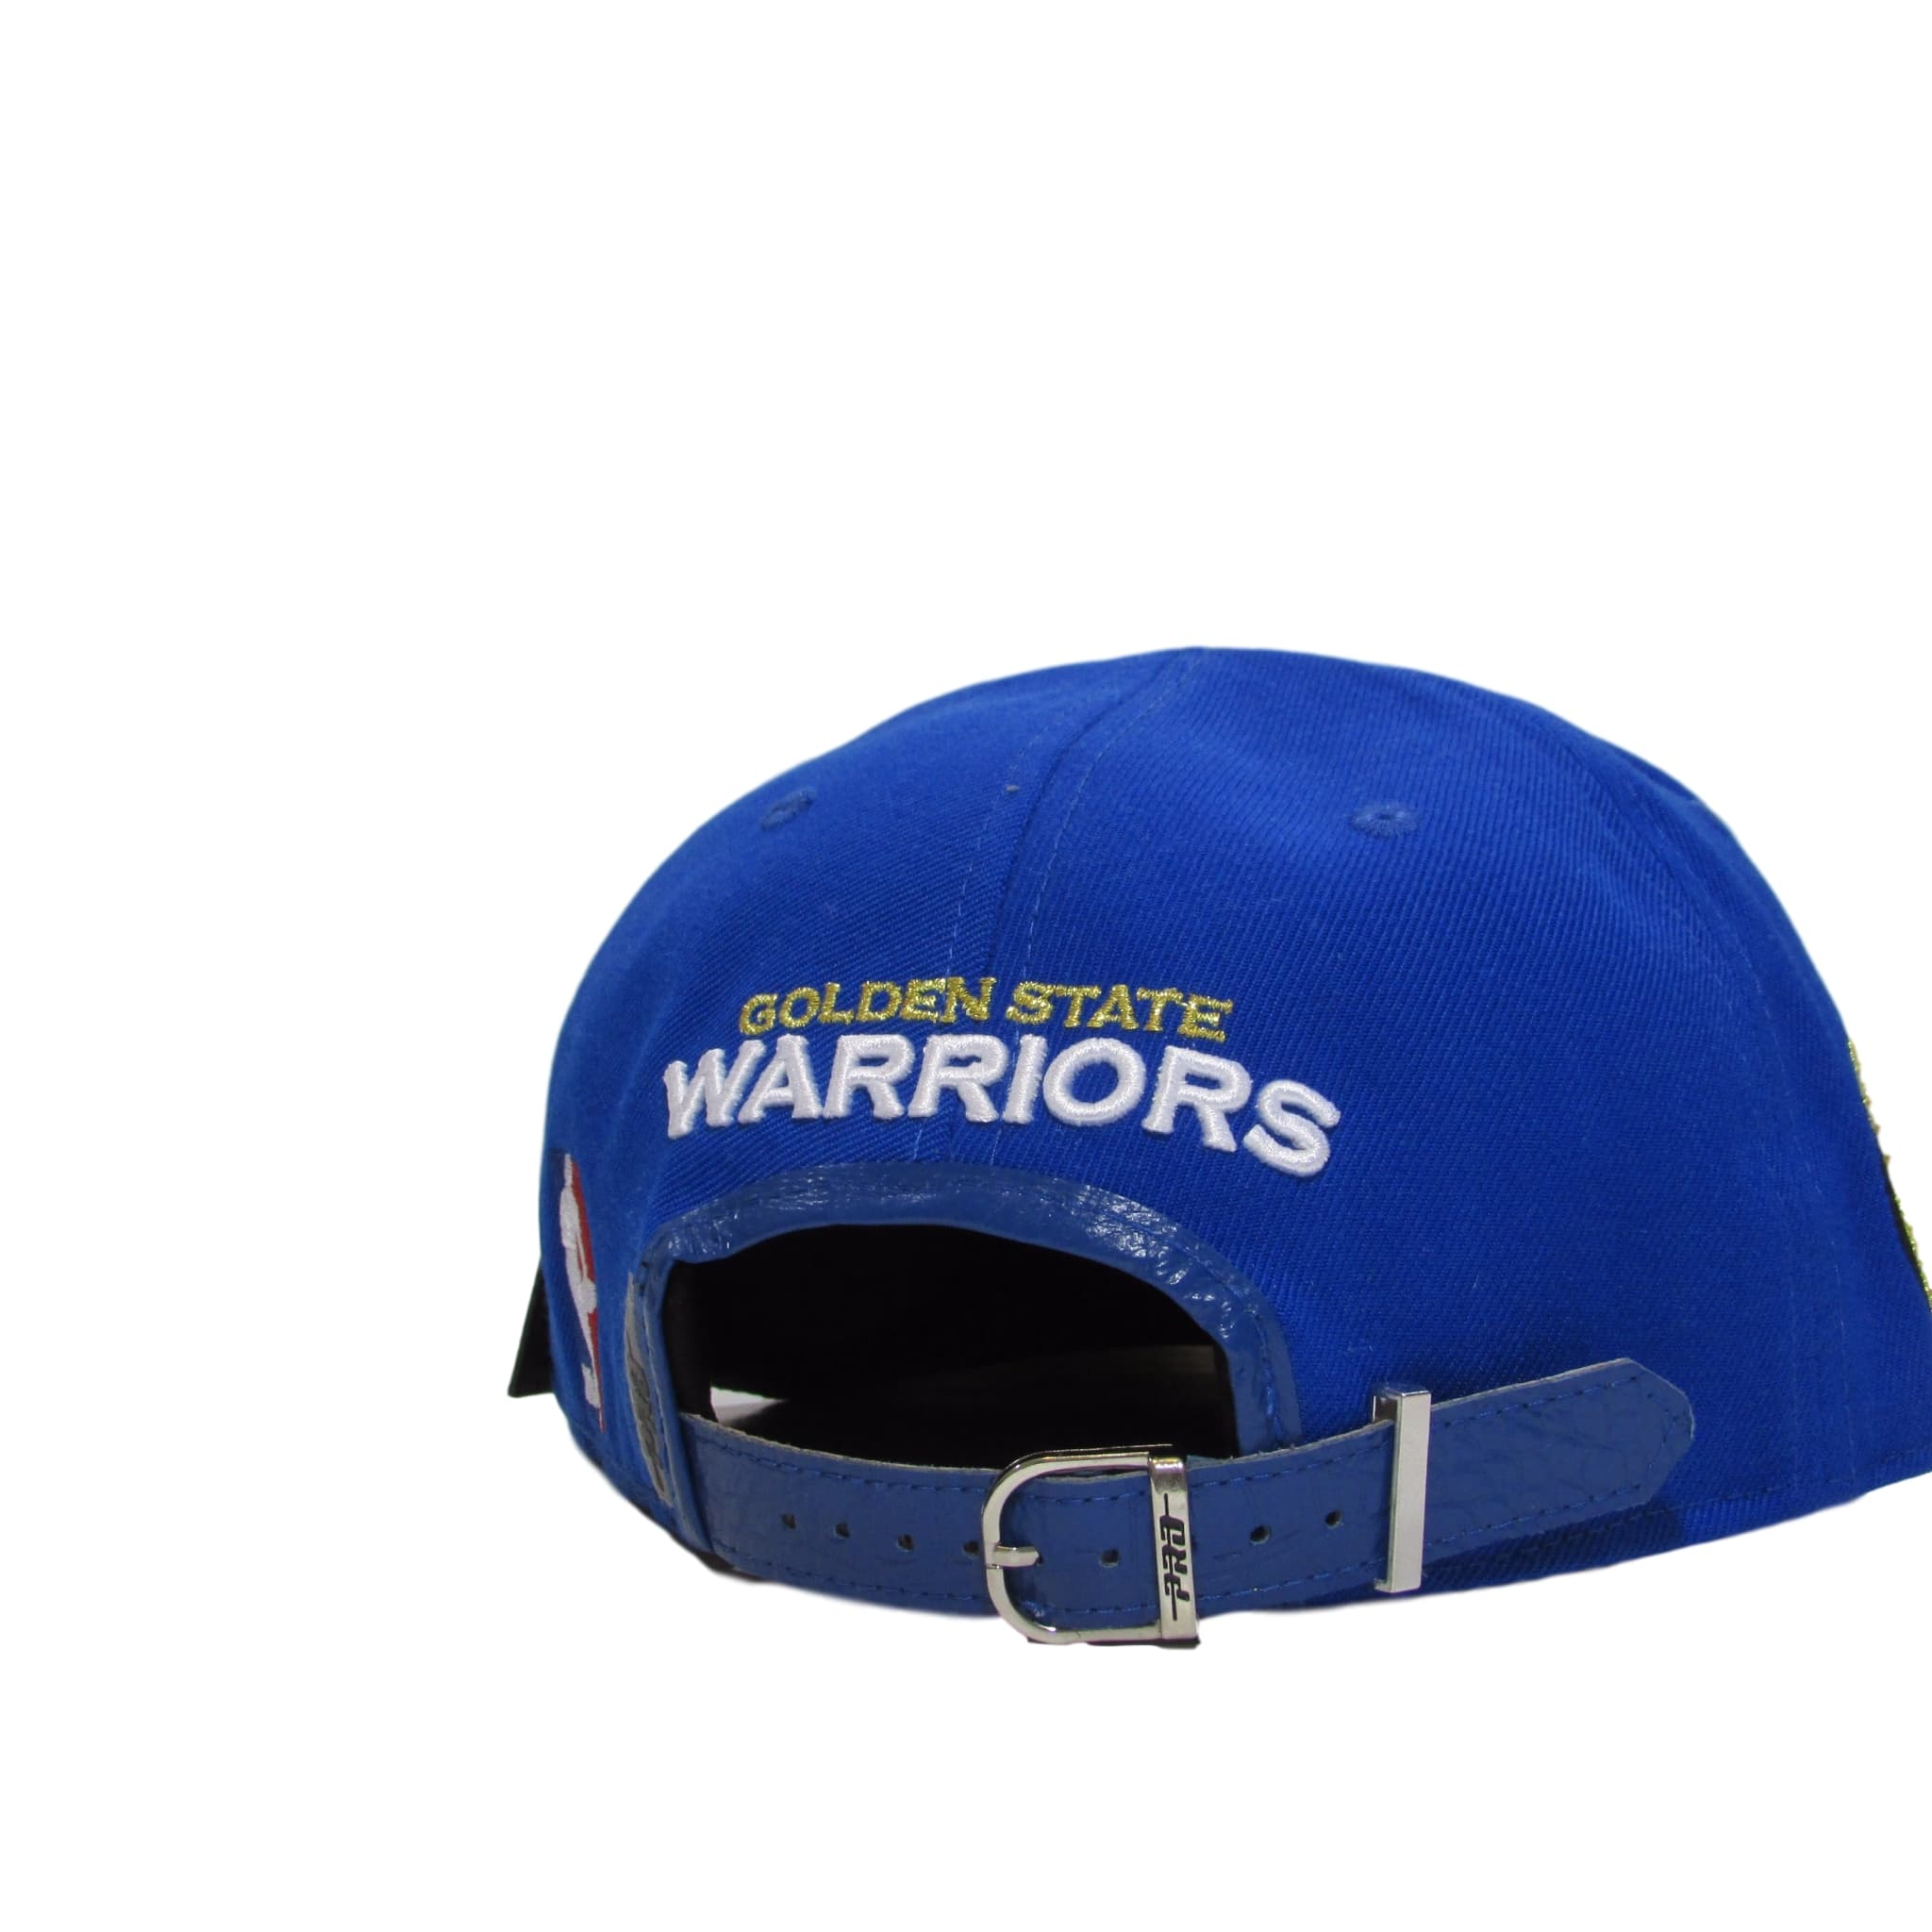 Golden State Warriors Blue Leather Strapback Hat Pro Standard